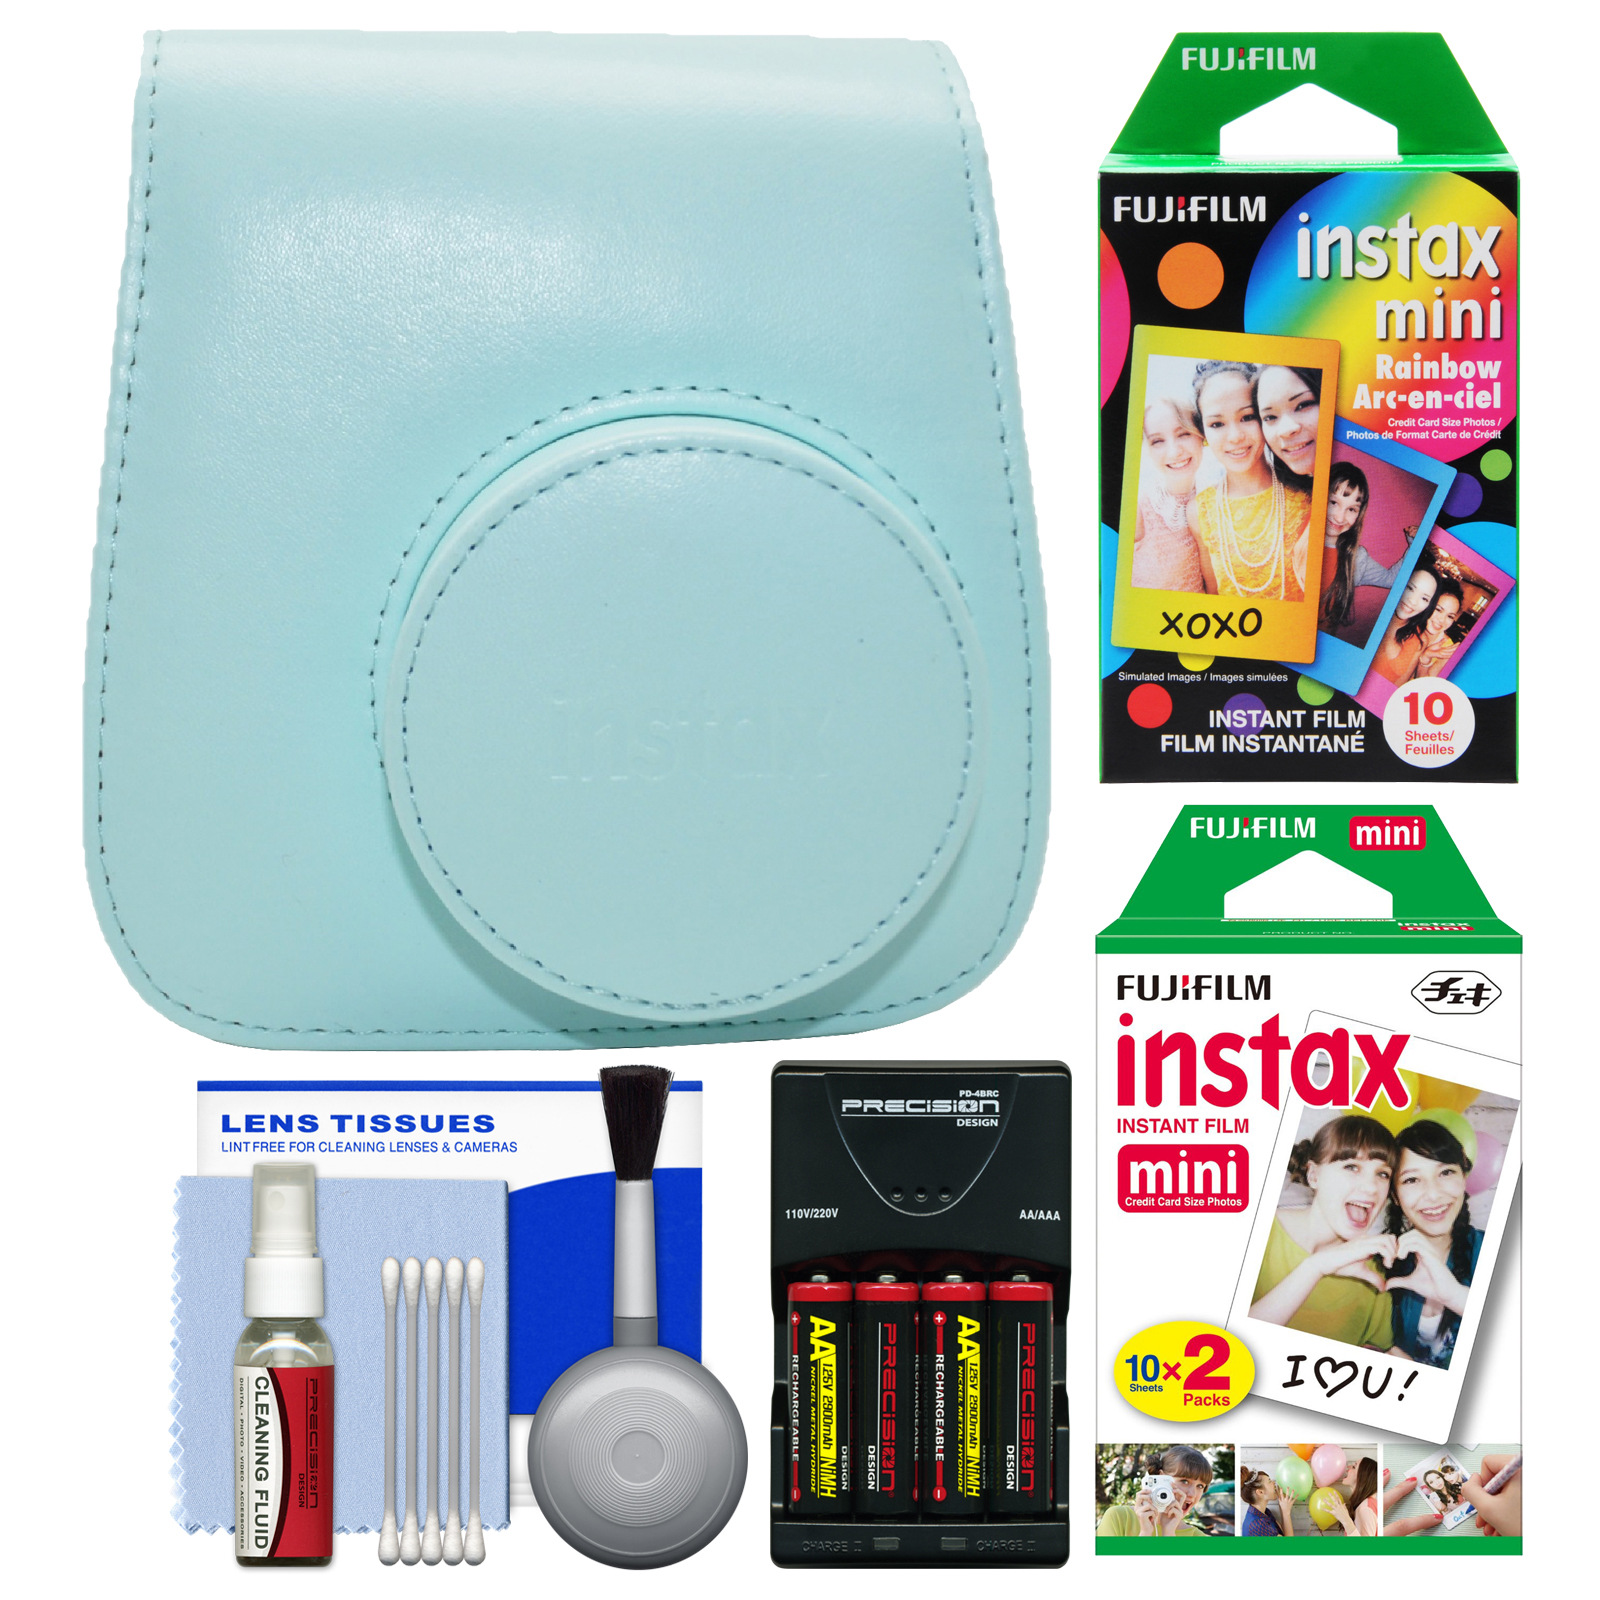 Fujifilm Groovy Case for Instax Mini 9 Instant Camera (Ice Blue) with 20 Twin & 10 Rainbow Prints + Batteries & Charger + Cleaning Kit